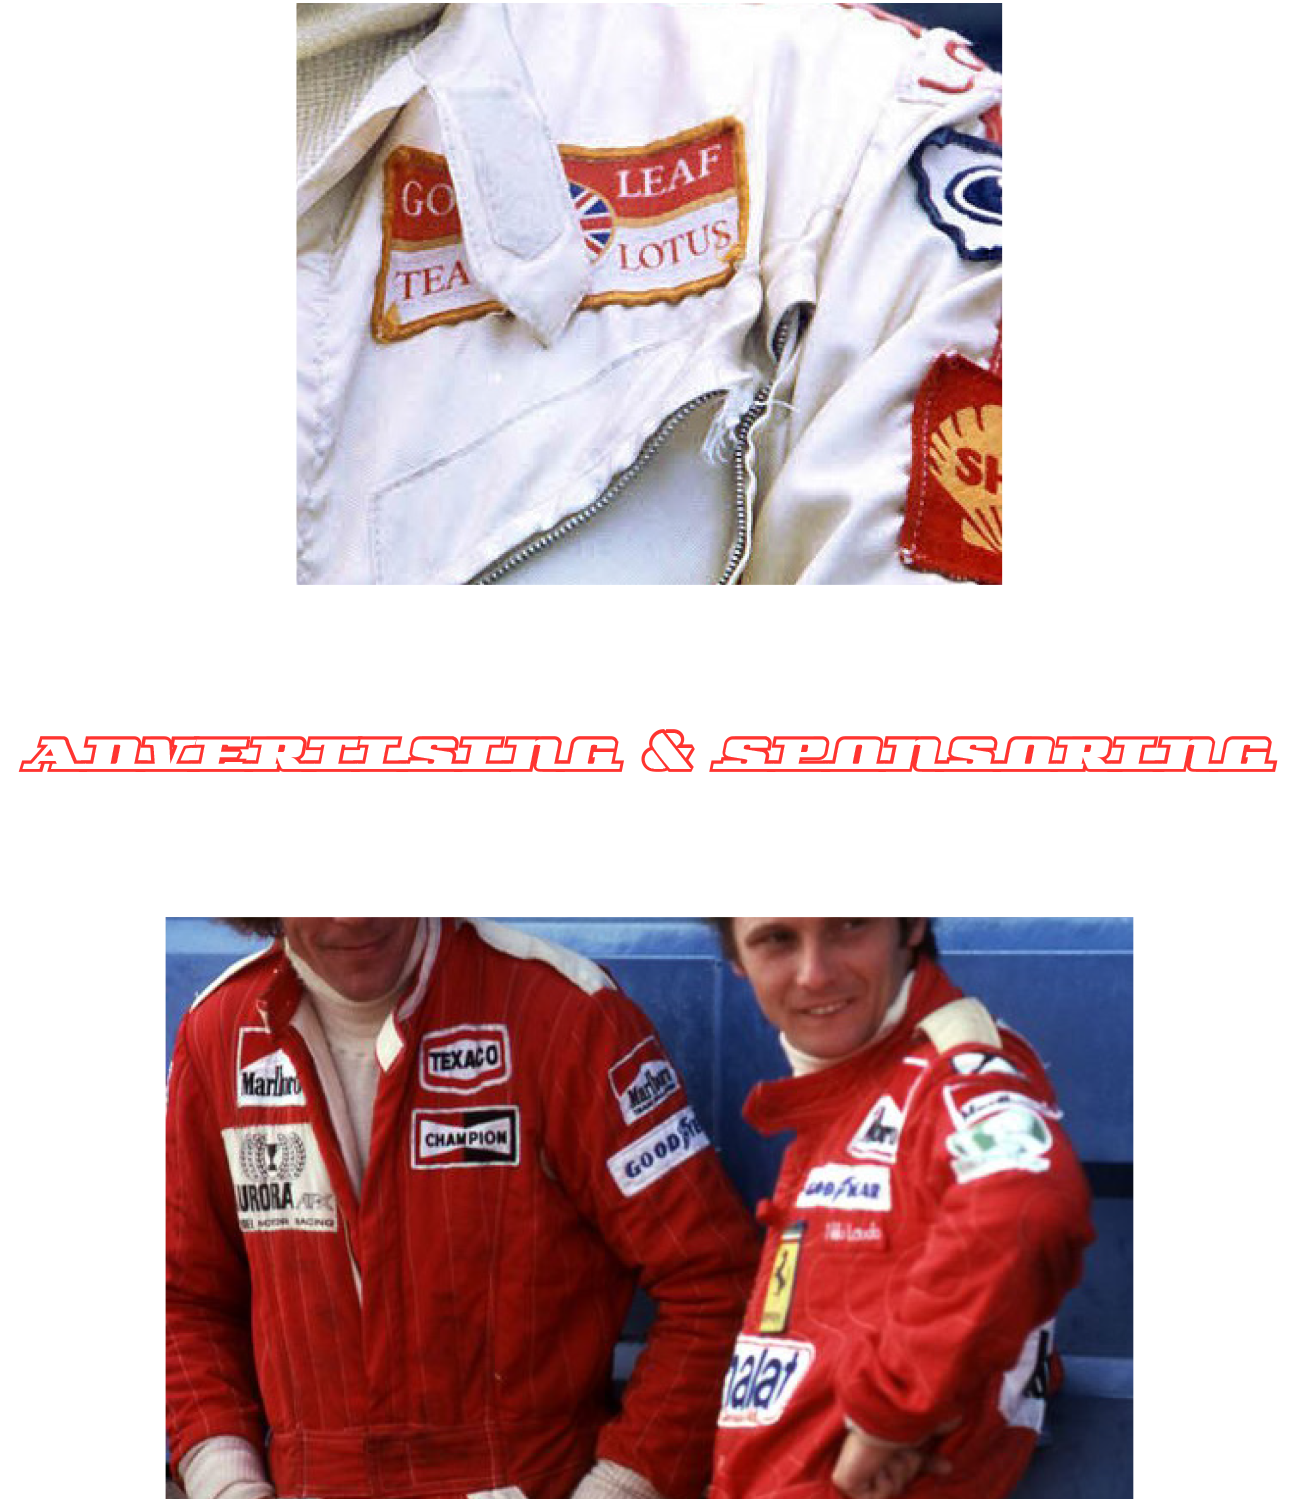 2 close-up images of sponsor logos on racing overalls